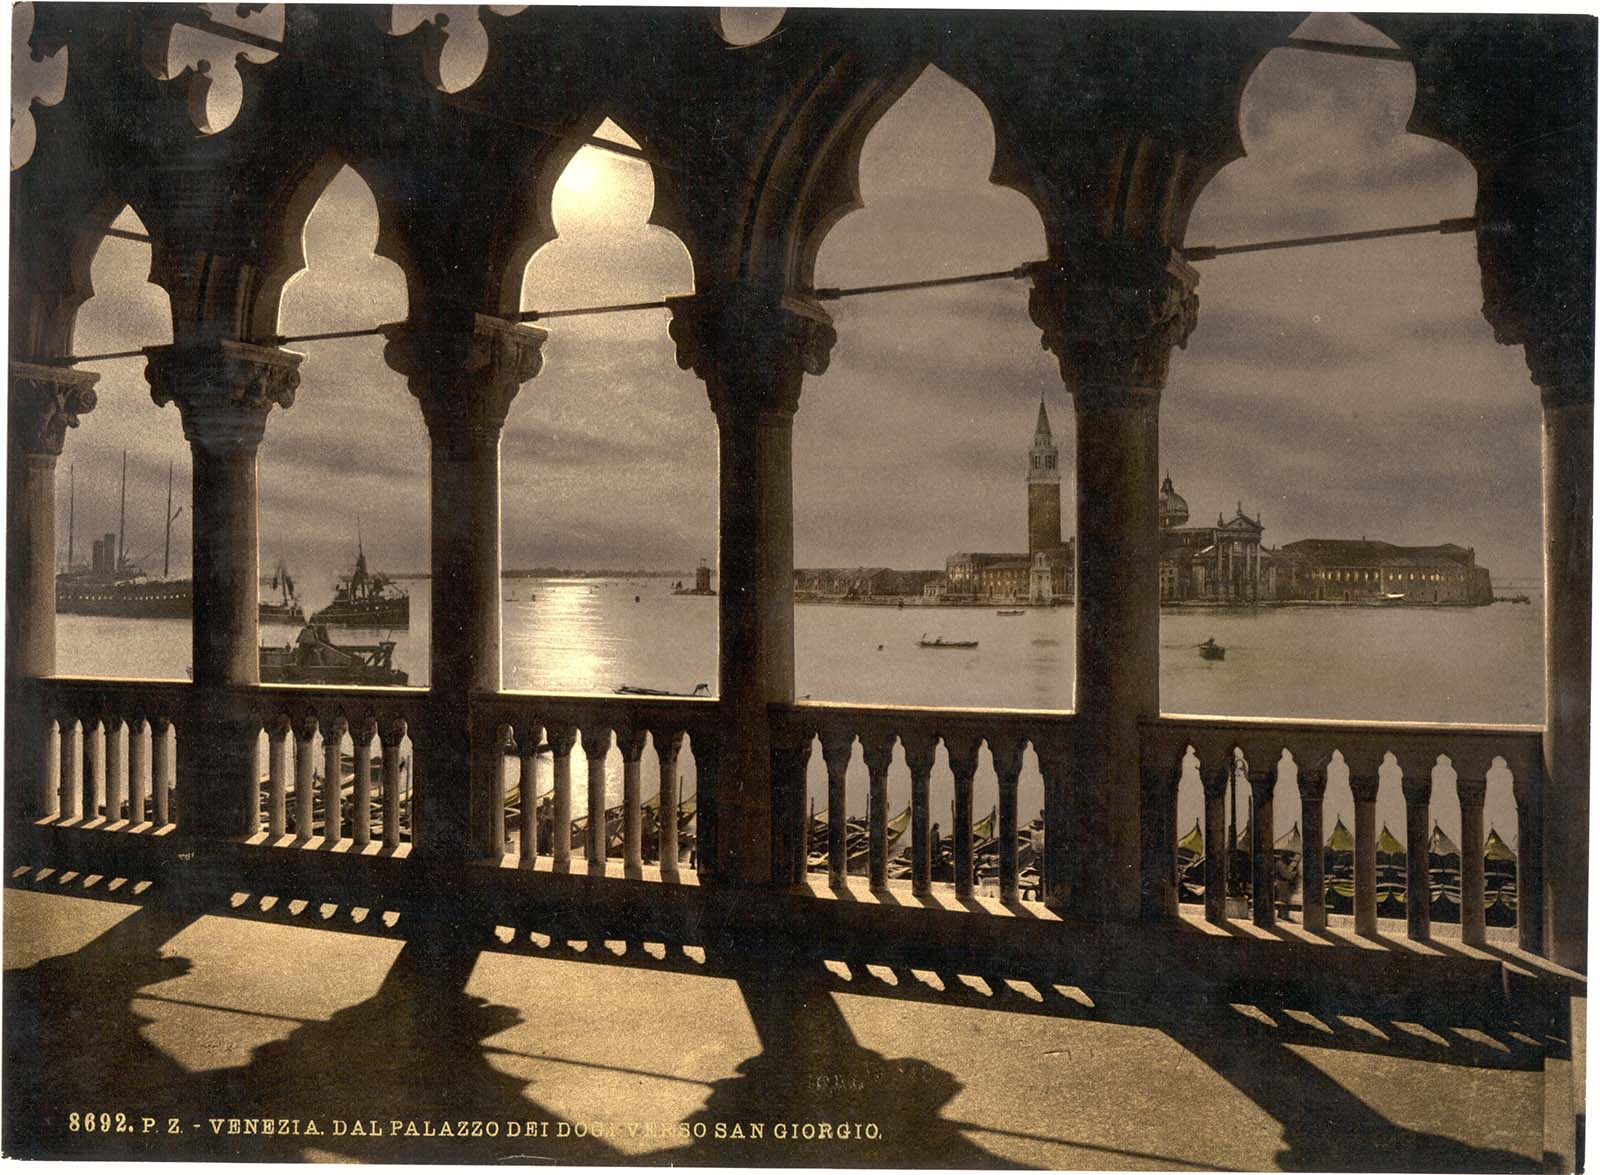 venice-in-beautiful-old-color-images-1890_20.jpg